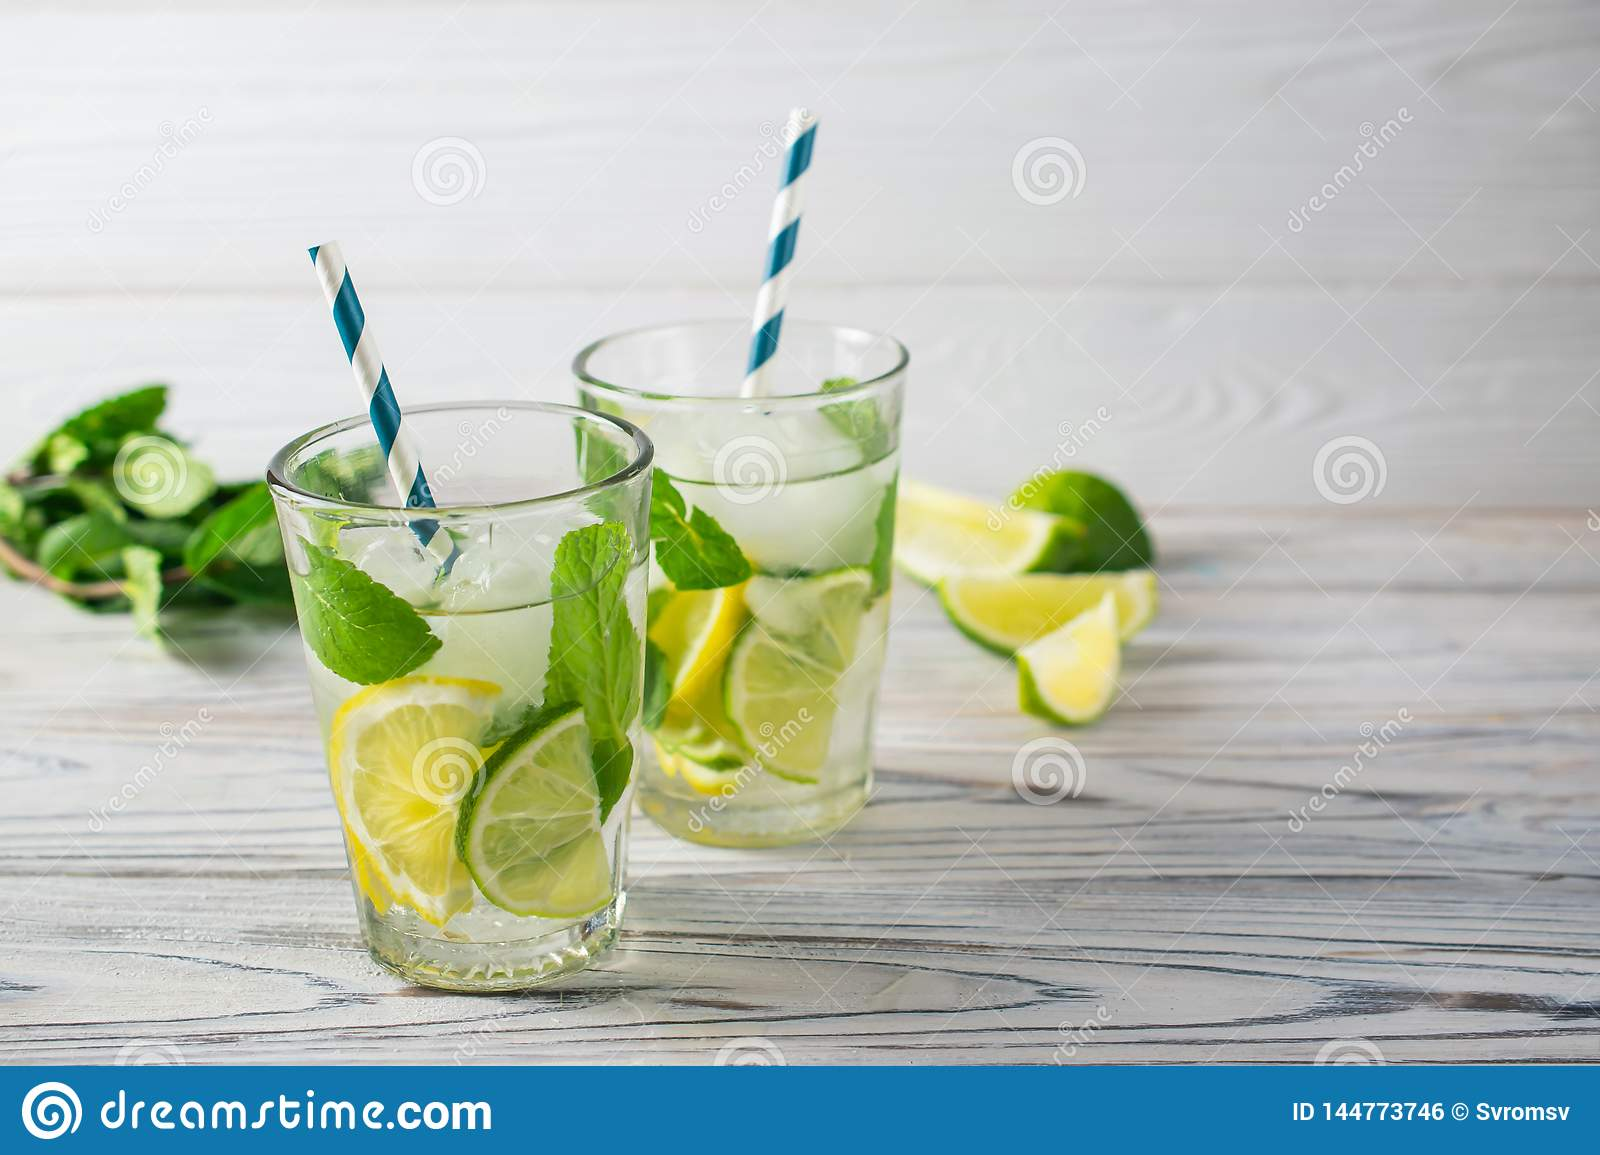 Summer detox healthy organic refreshing water with lemon, lime and mint